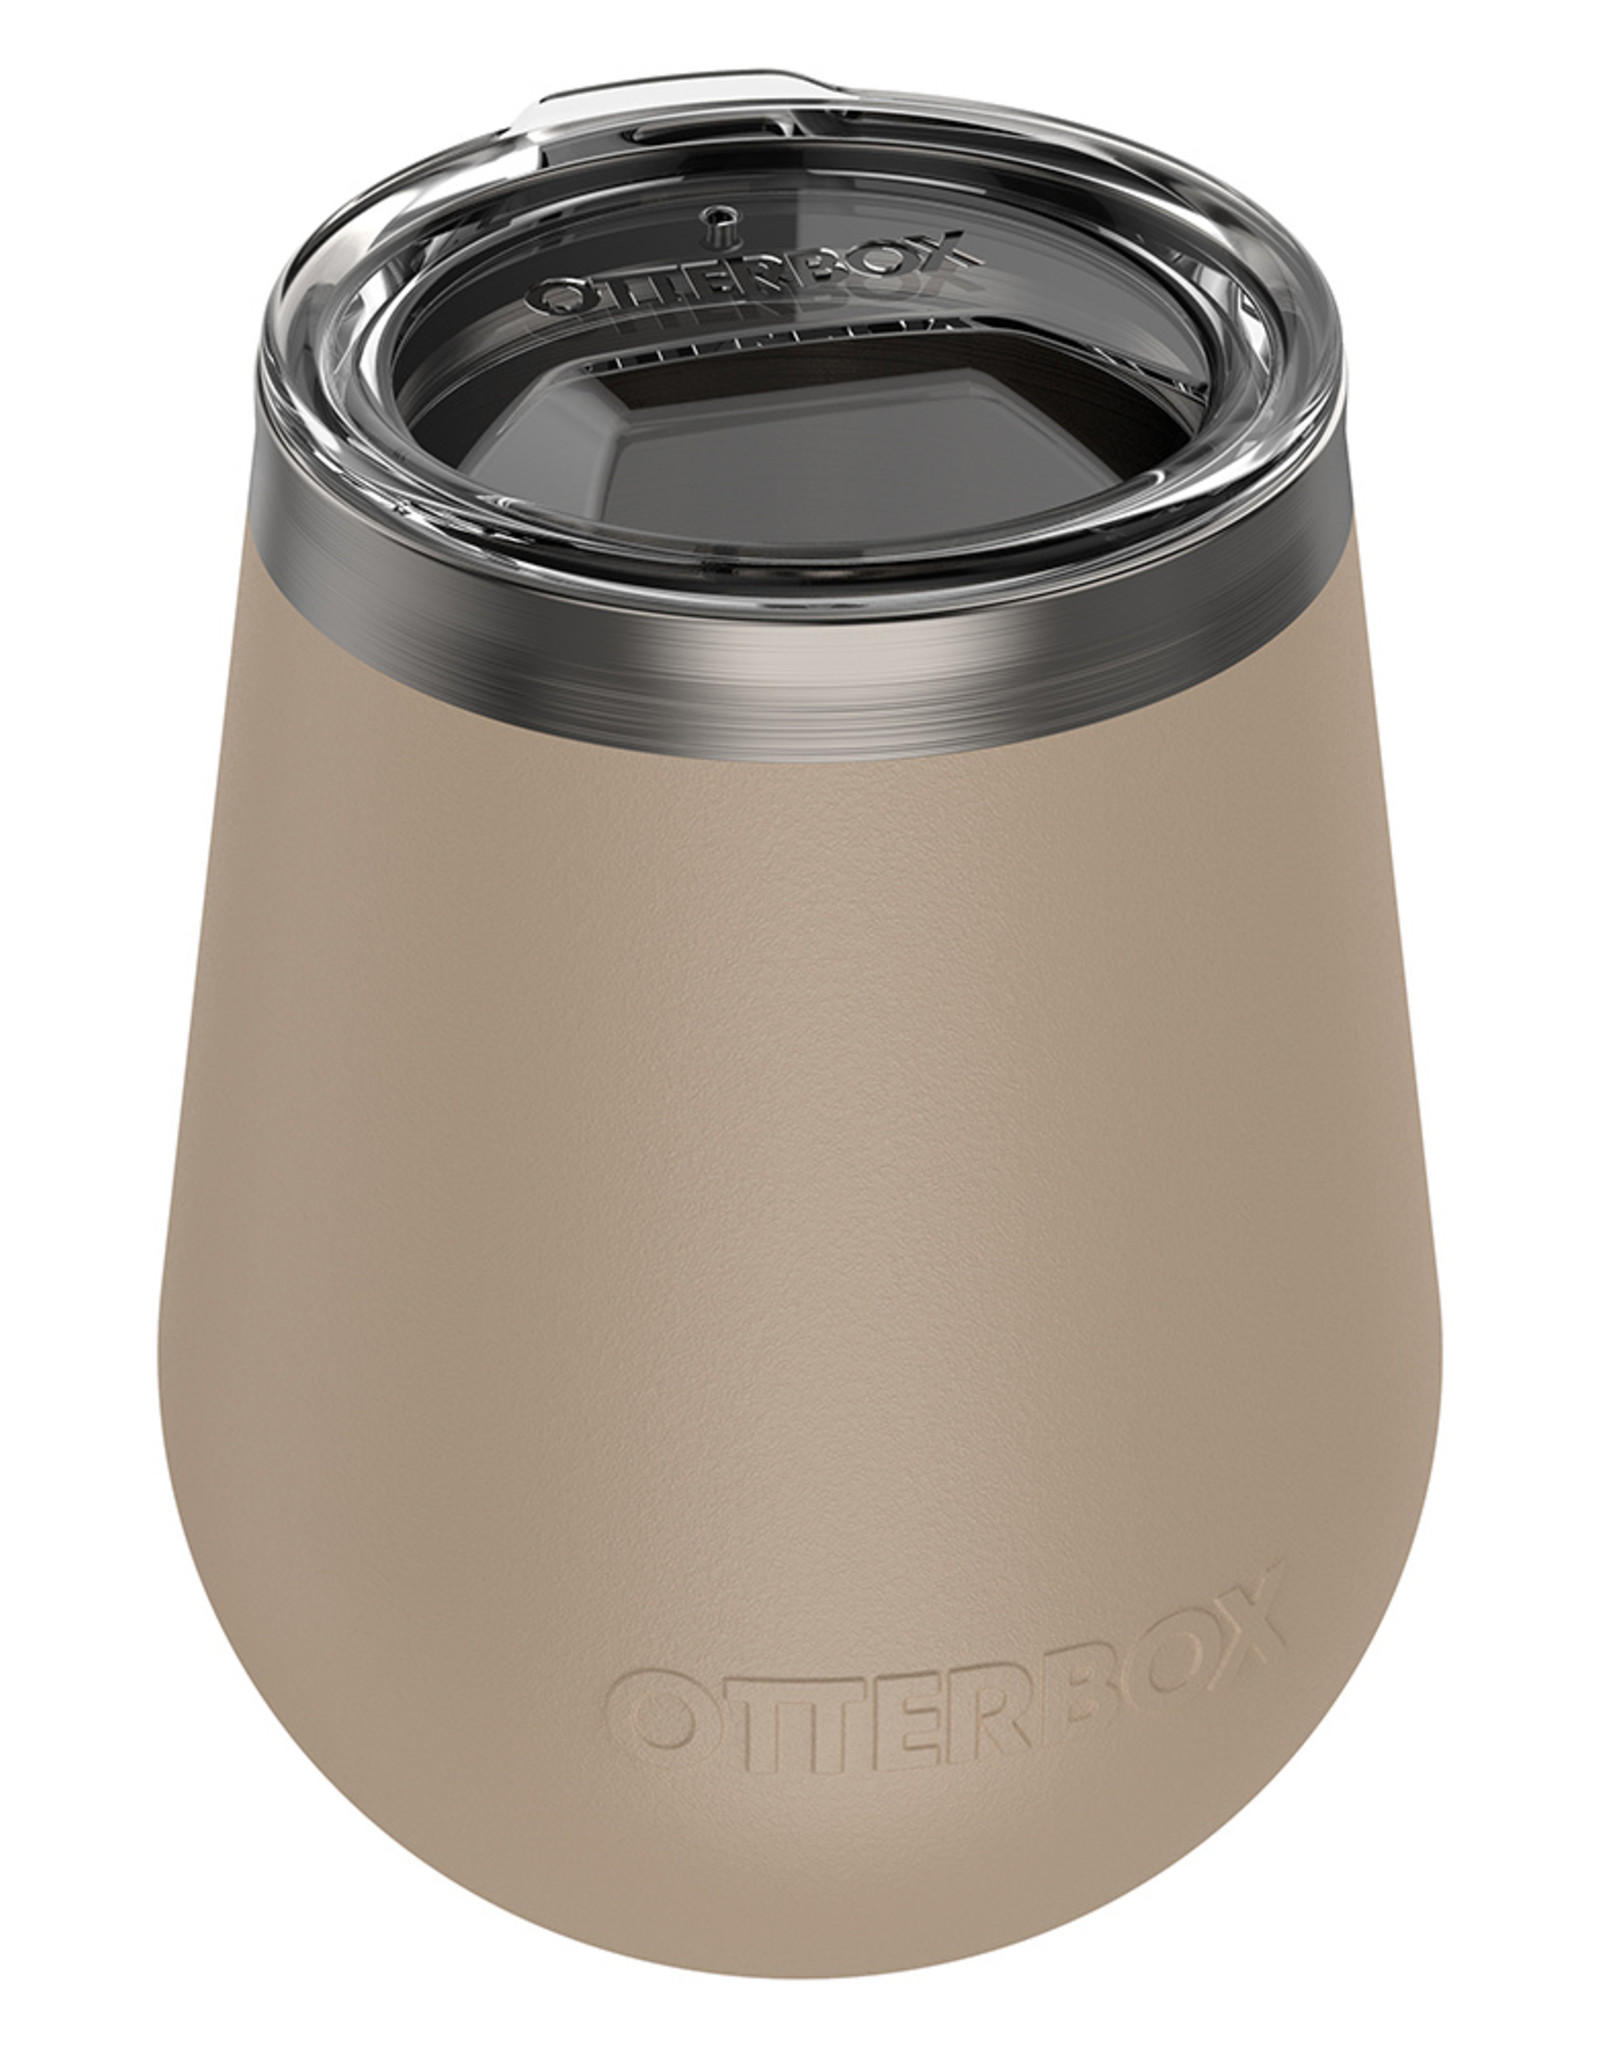 Otterbox Otterbox - Elevation Wine Tumbler Frappe (Stainless Steel/Bleached Sand) 102-0109